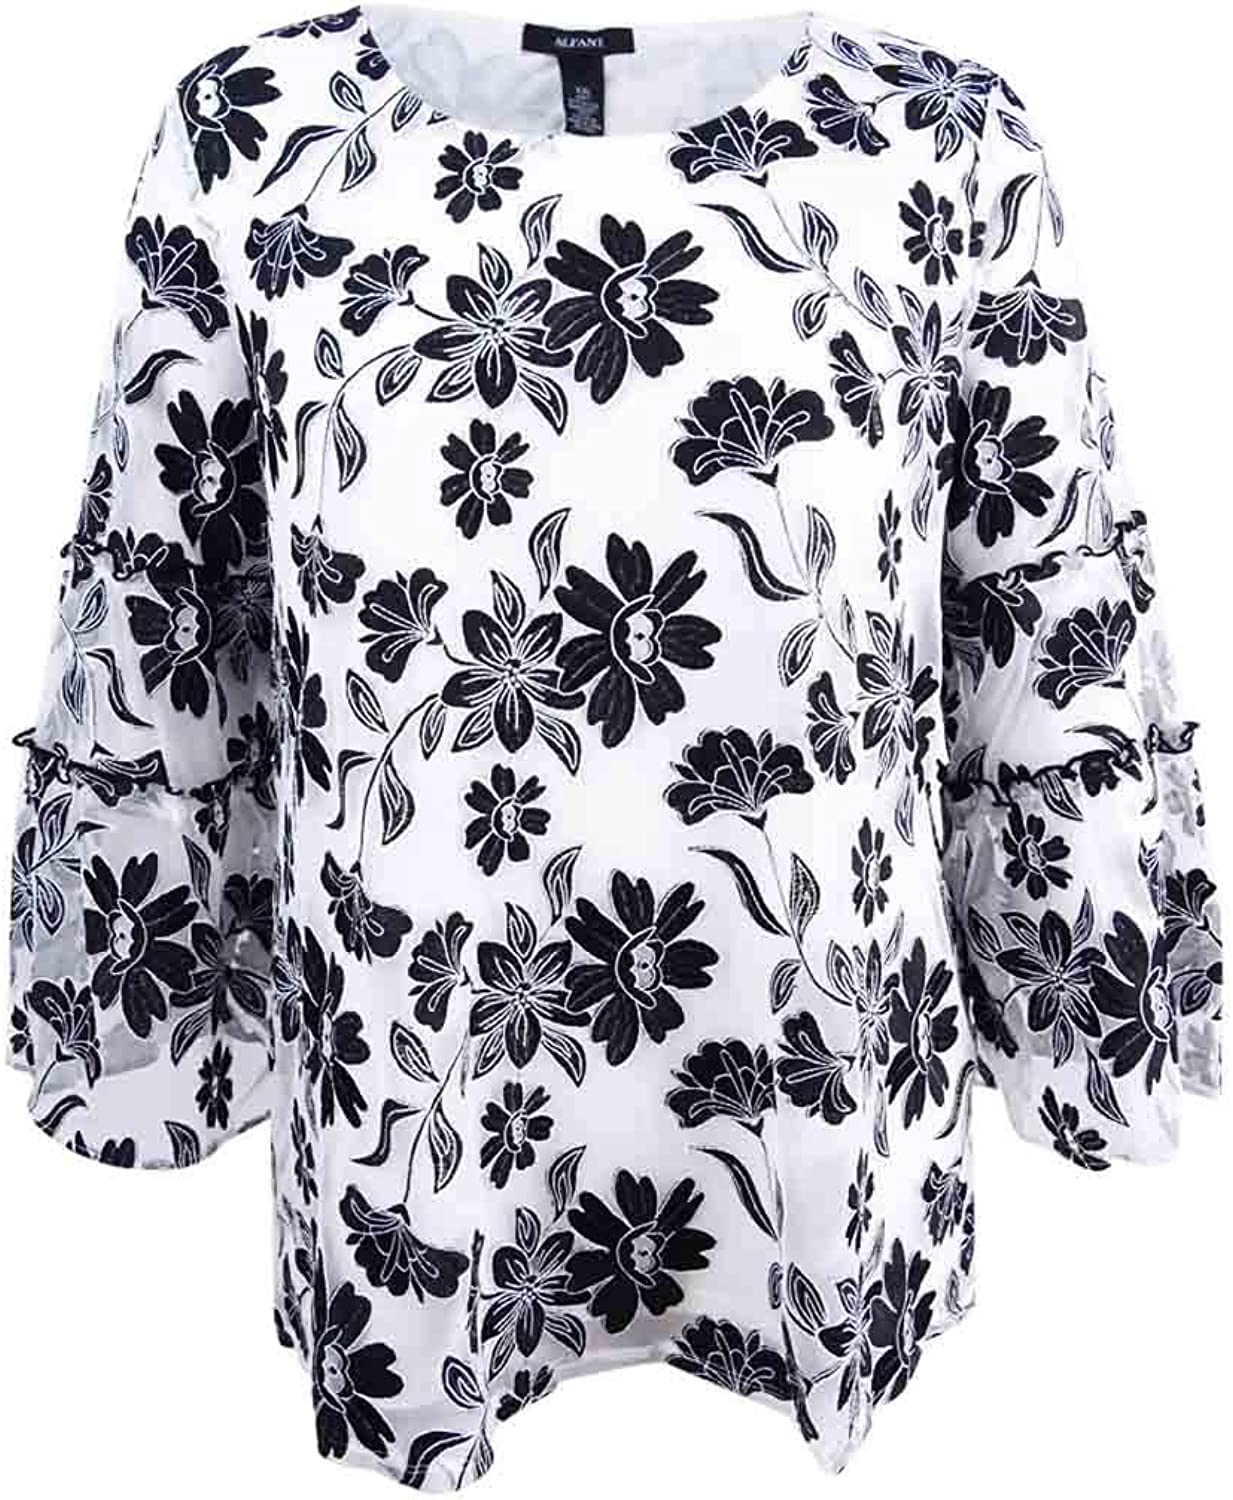 Alfani Women's Floral Embroidered SheerSleeve Top